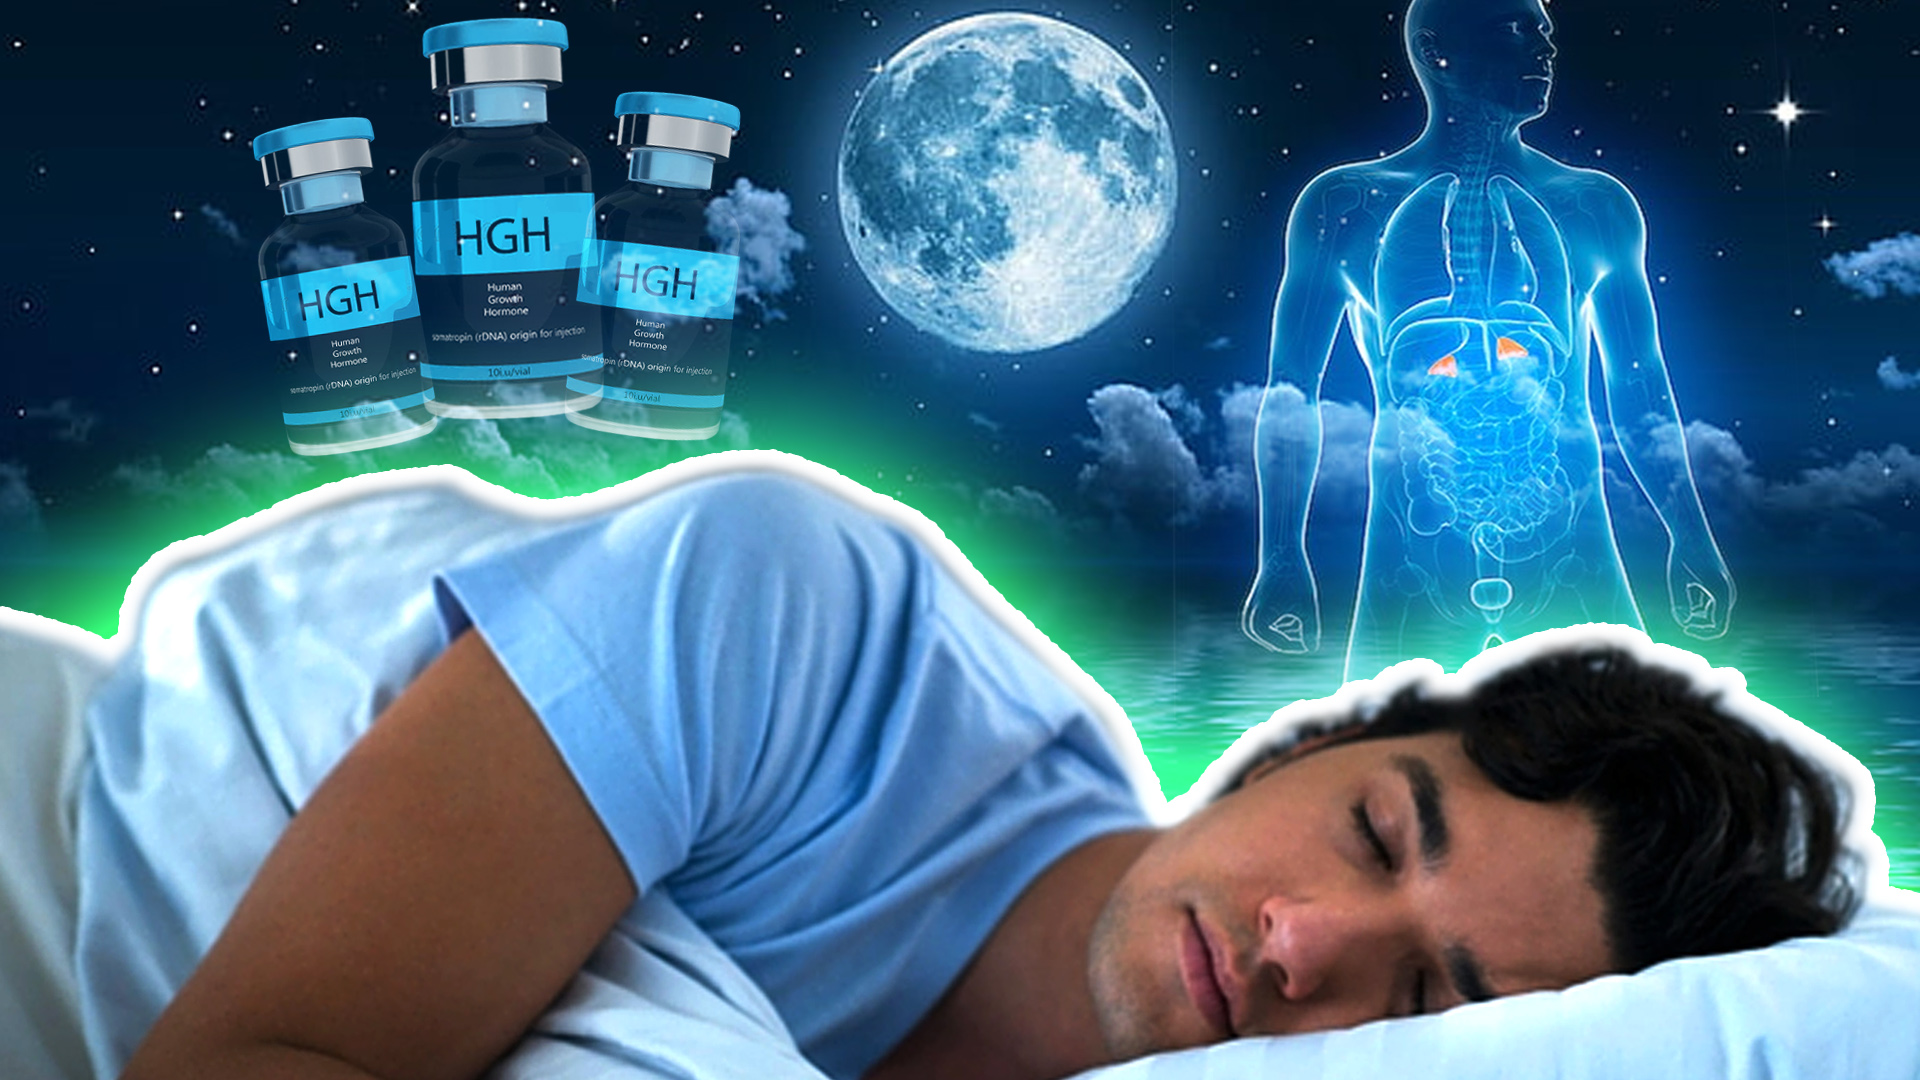 Taking GH before going to sleep effect in GH production during sleep, will it suppress natural production?